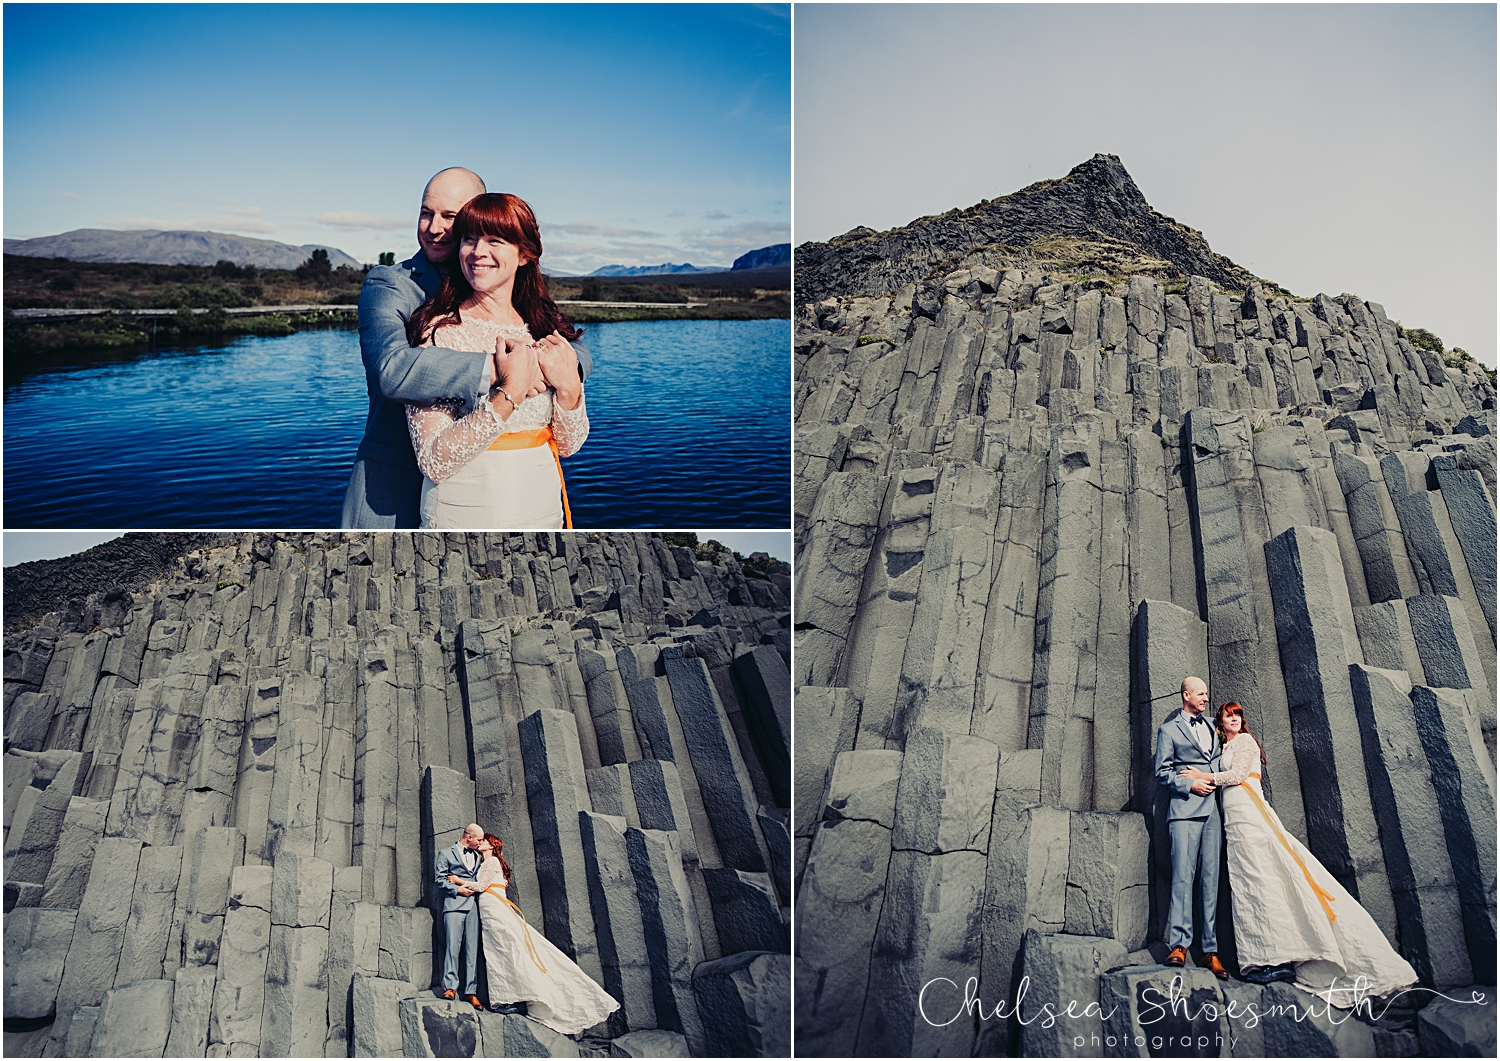 (11 of 24)Laura & Kevin   -  Chelsea Shoesmith Photography